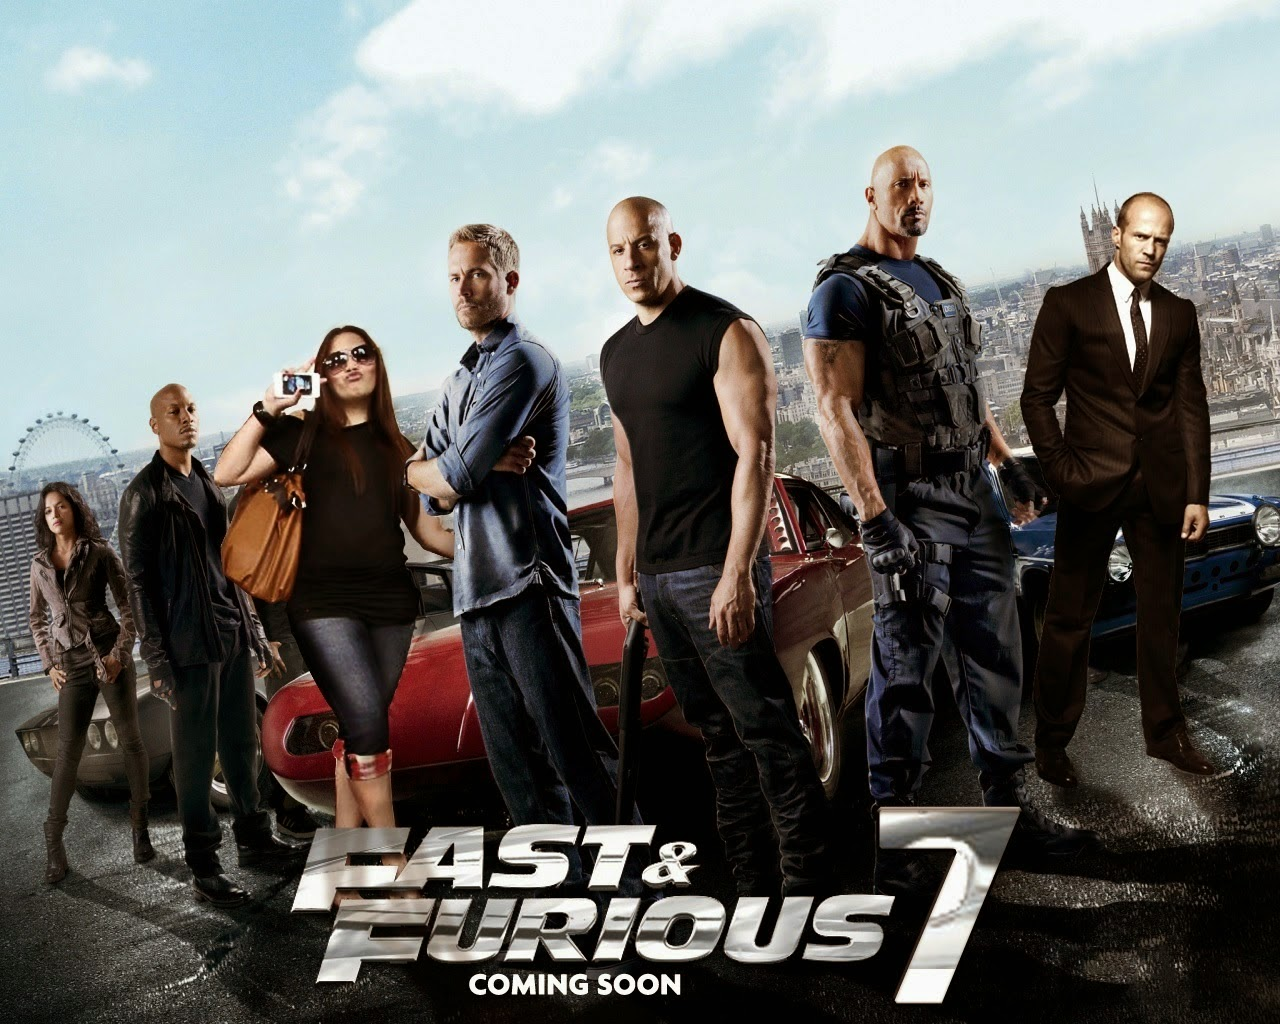 Fast and furious 7 in hindi mp4 hd movies